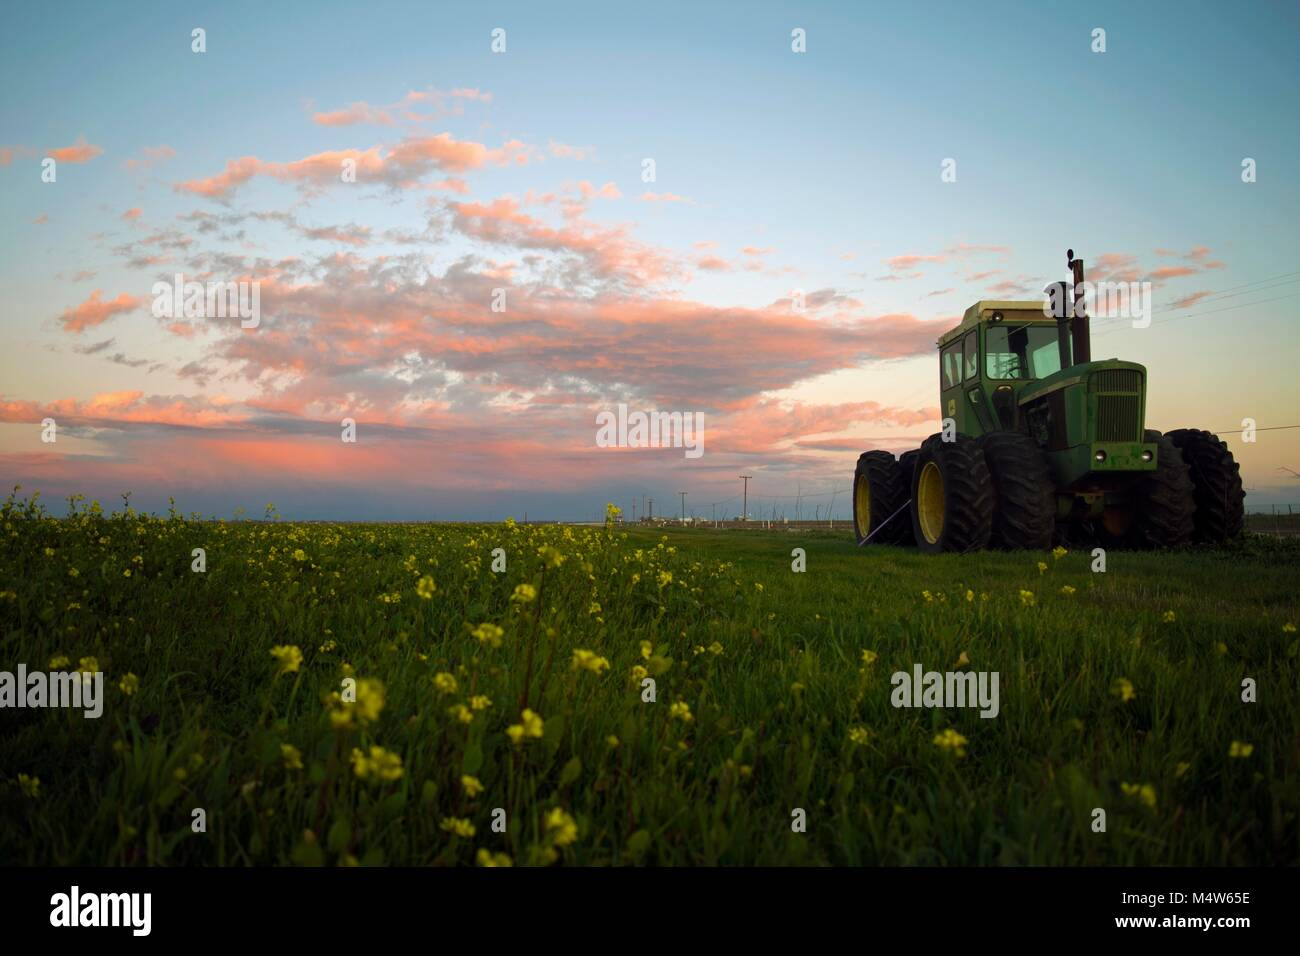 A tractor sits unused in a field during sunset outside of Woodland, CA. Stock Photo